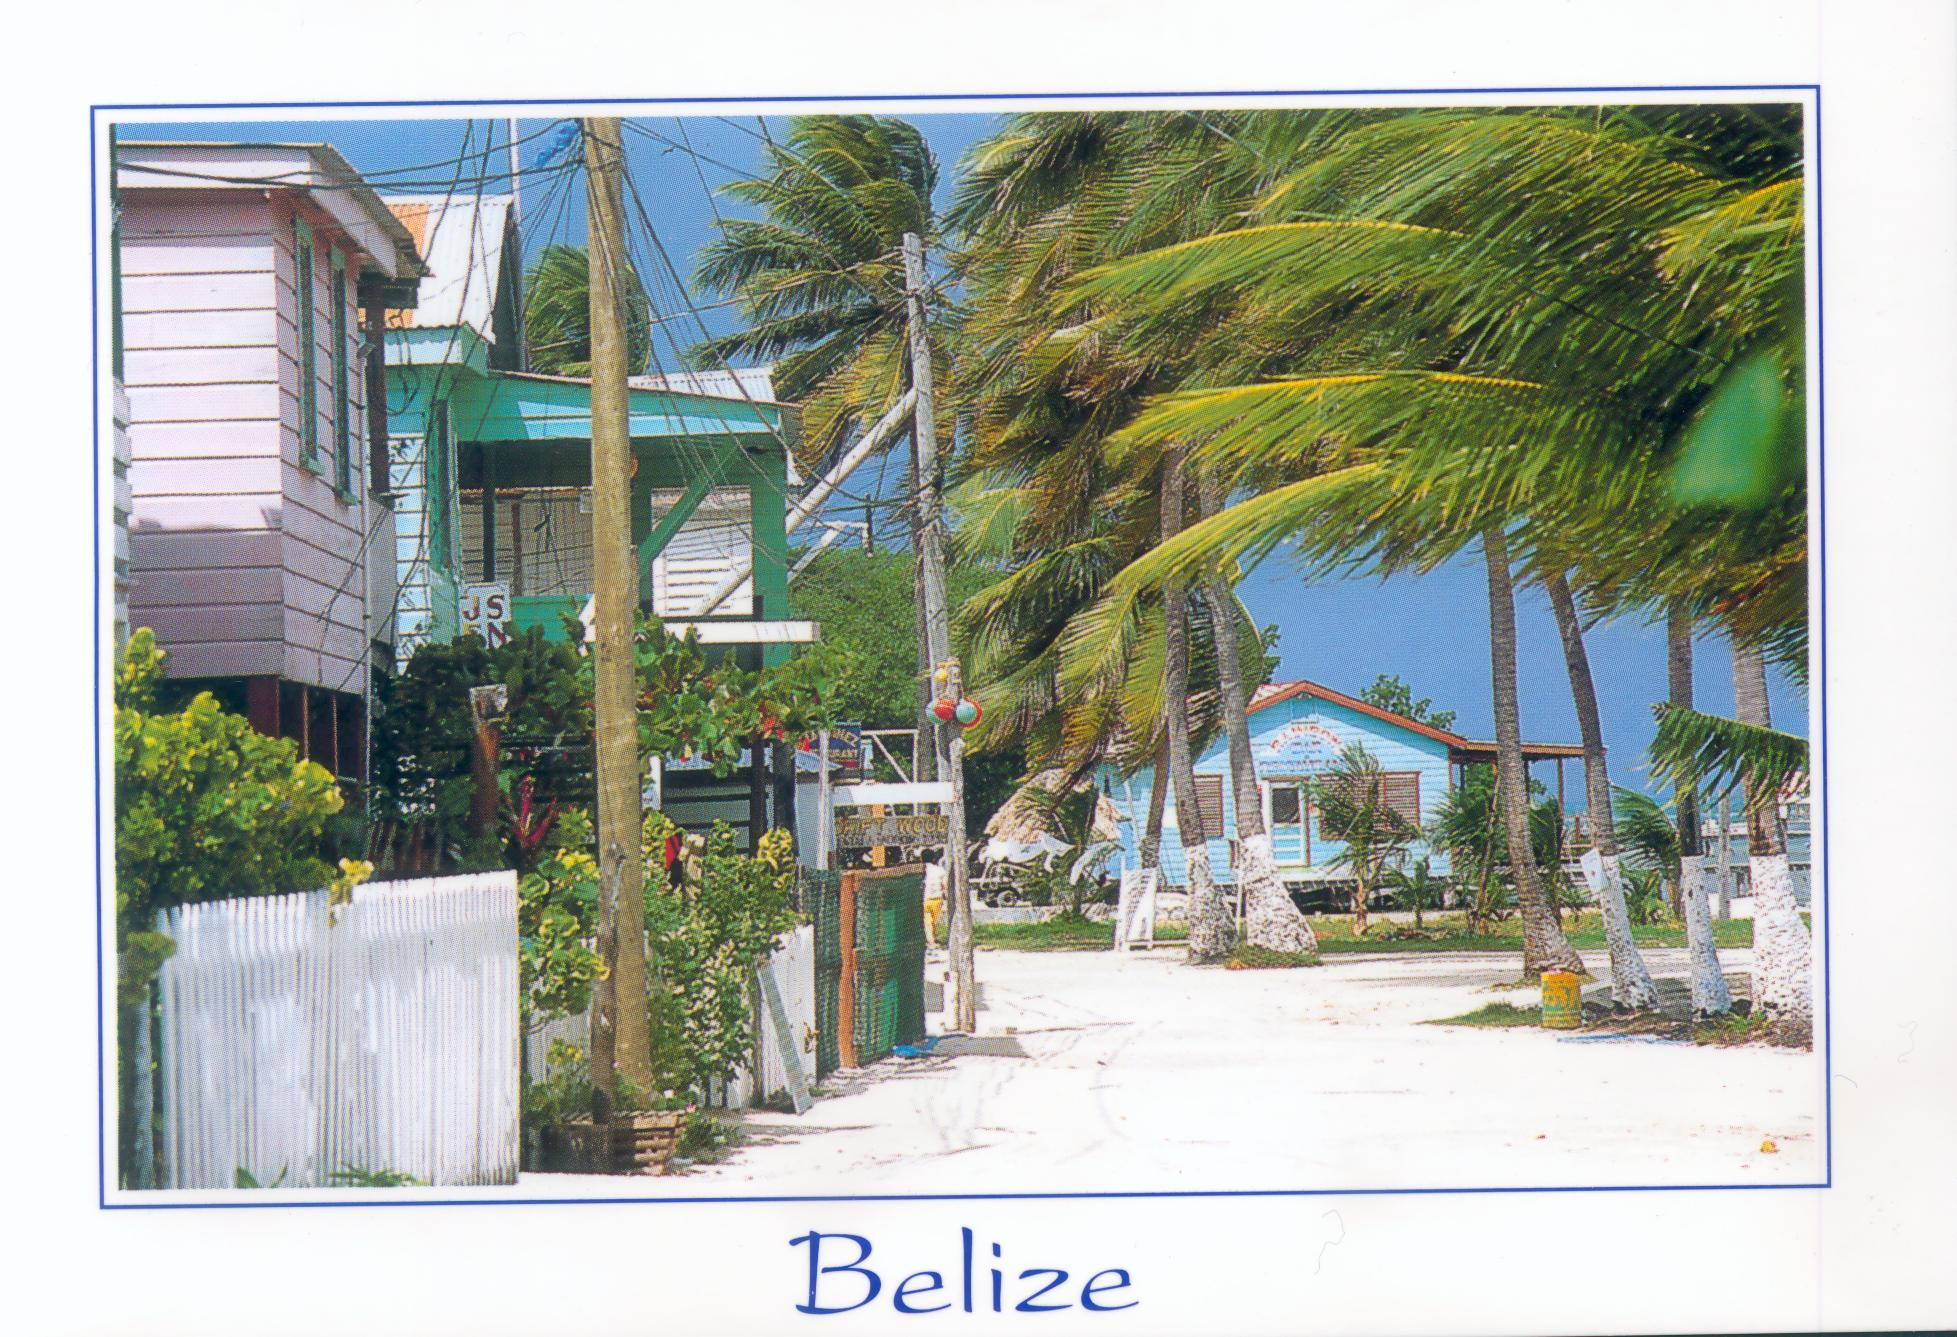 belize chatrooms Free live online chat rooms with no registration chat with real people.